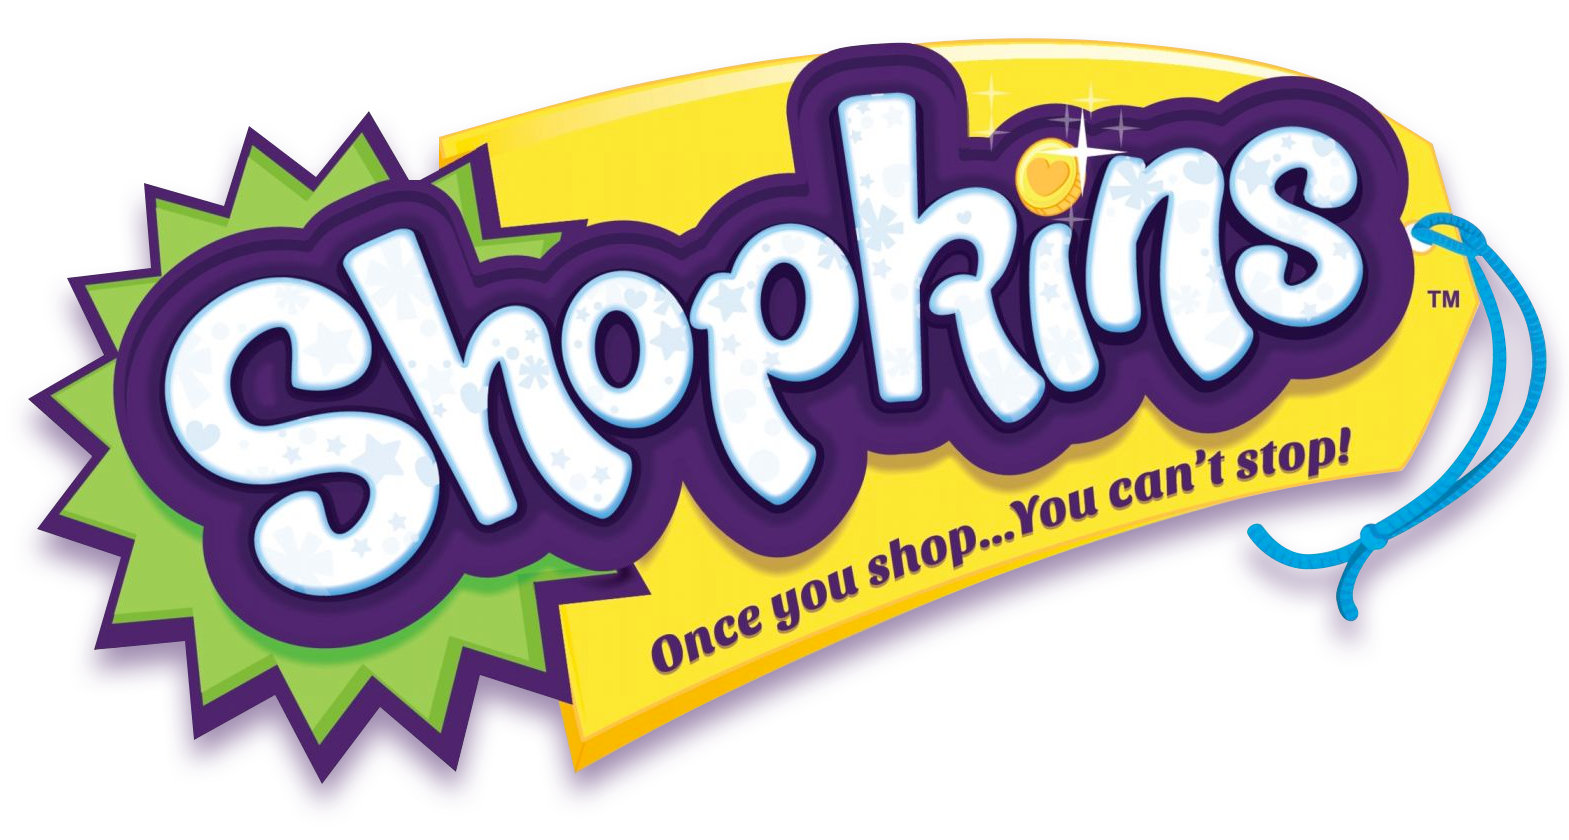 Free shopkins logo clipart library 17 Best images about Shopkins on Pinterest | Birthdays, Clip art ... library